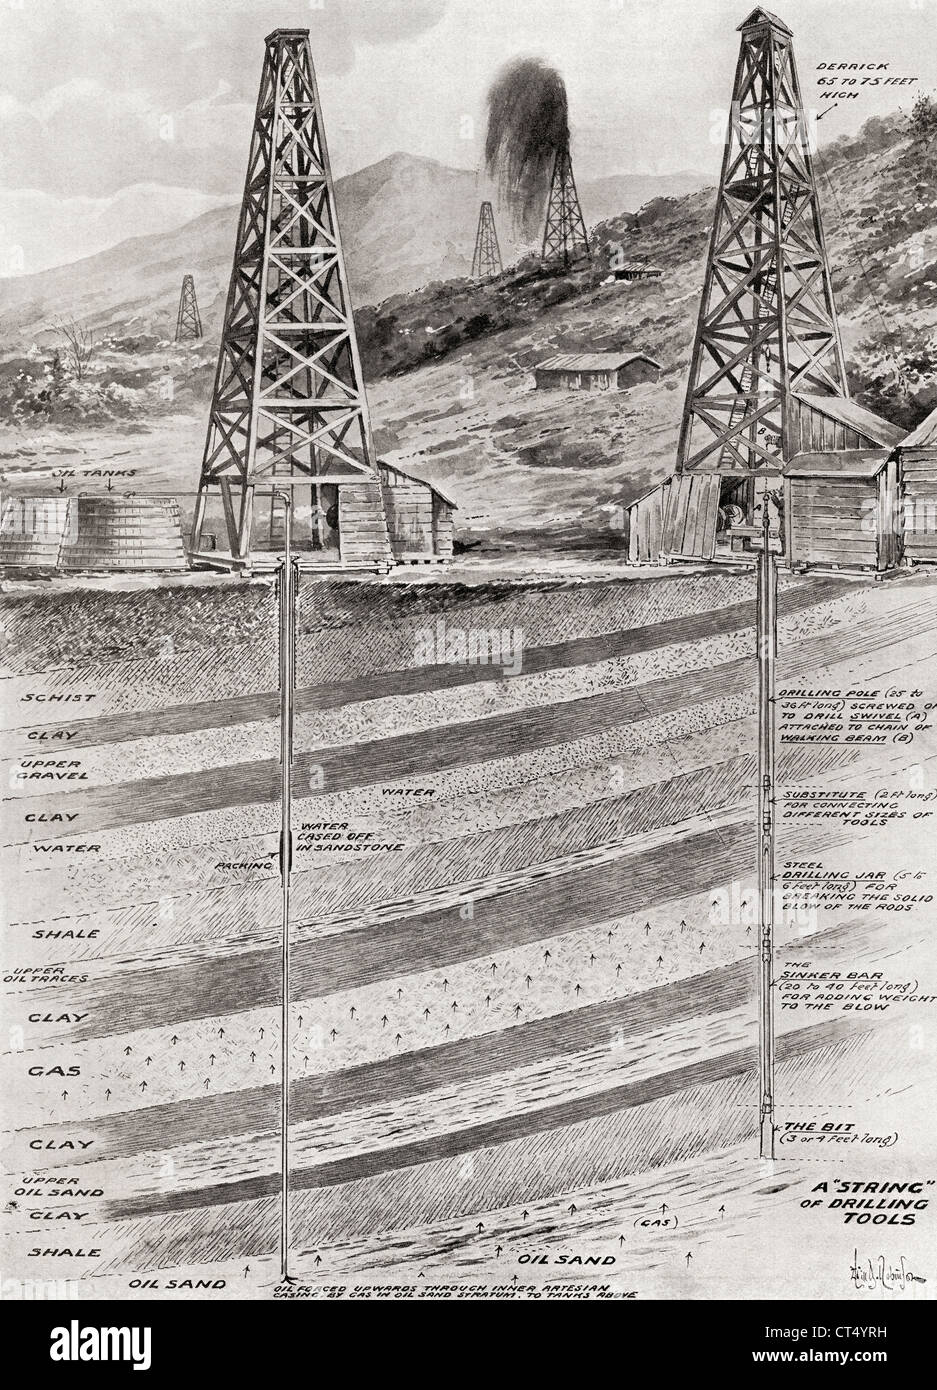 Illustration showing oil derricks boring for oil in England in 1919. From The Year 1919 Illustrated. - Stock Image